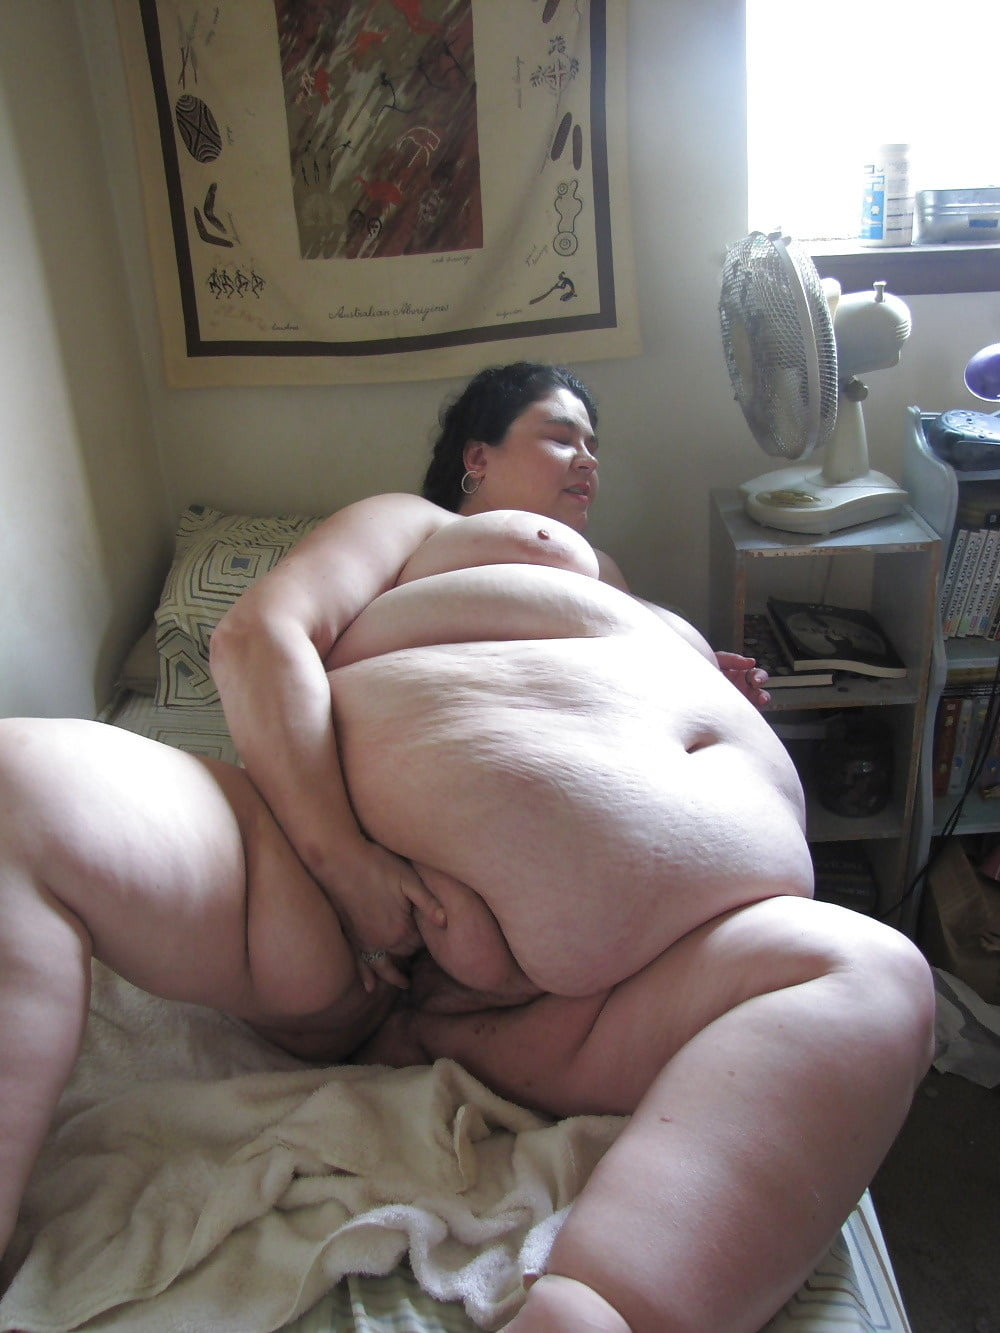 have-anal-morbidly-obese-black-women-naked-girl-next-door